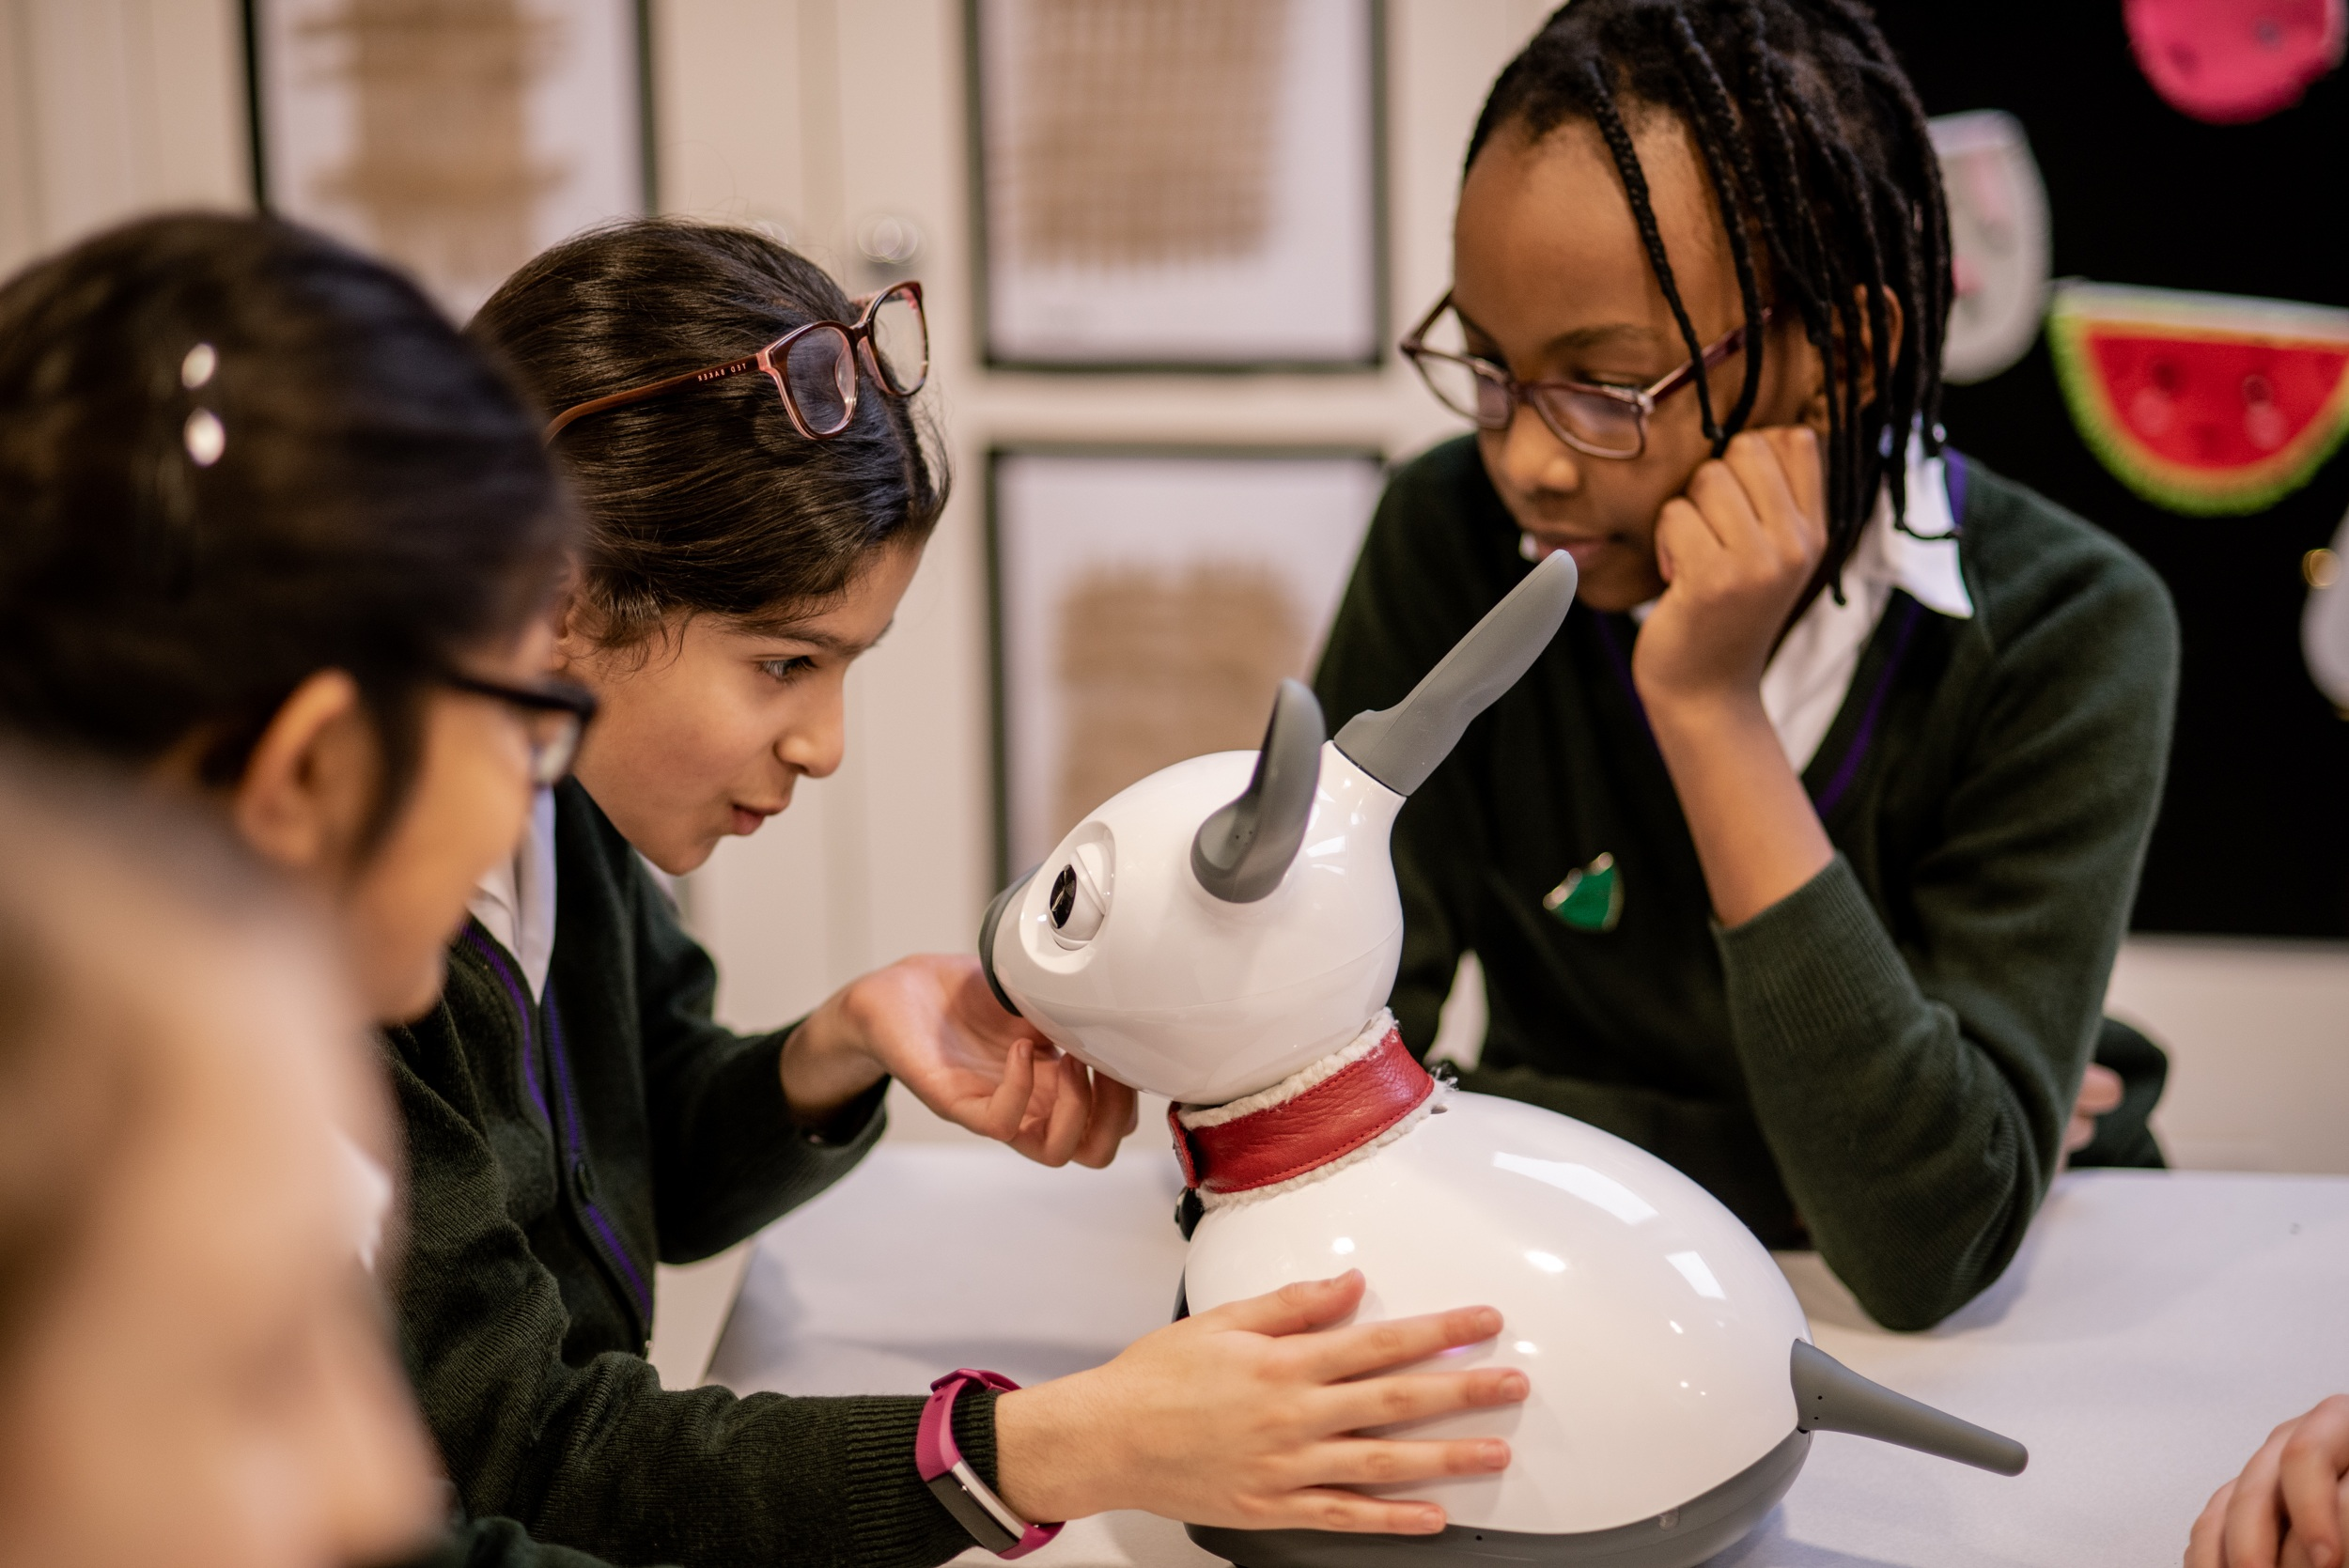 MiRo-E with students at a School in North London, UK.